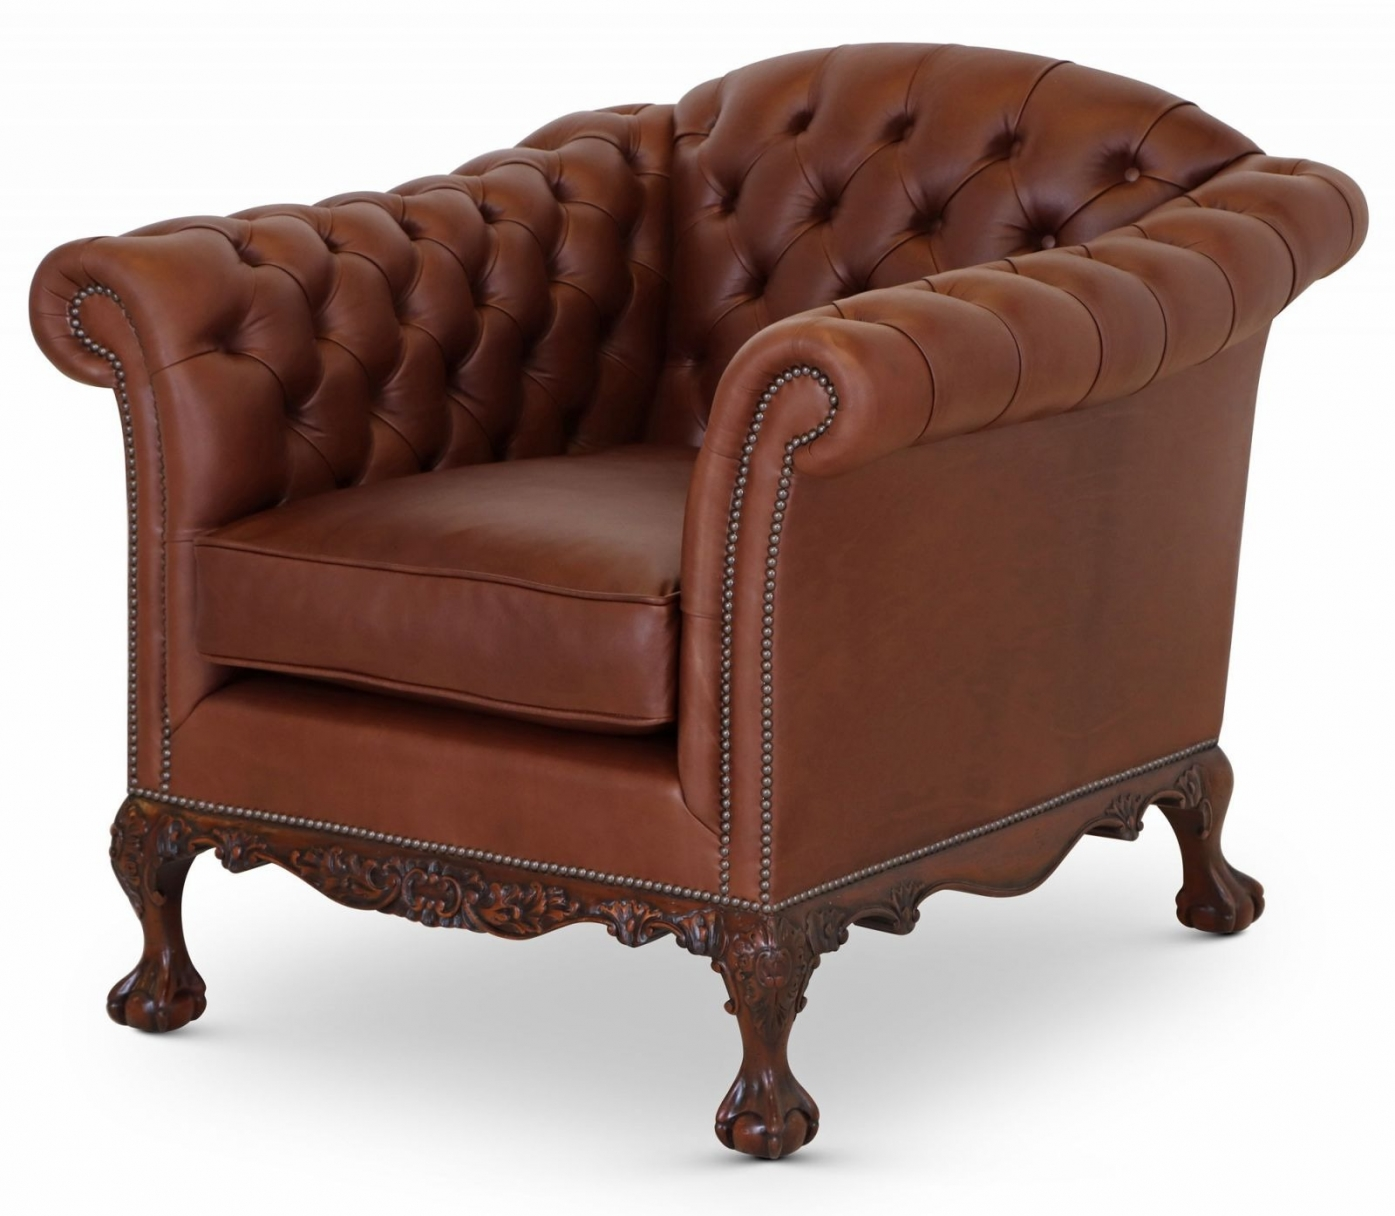 Dryden Howard and Sons style sofa and chair - Chocolate